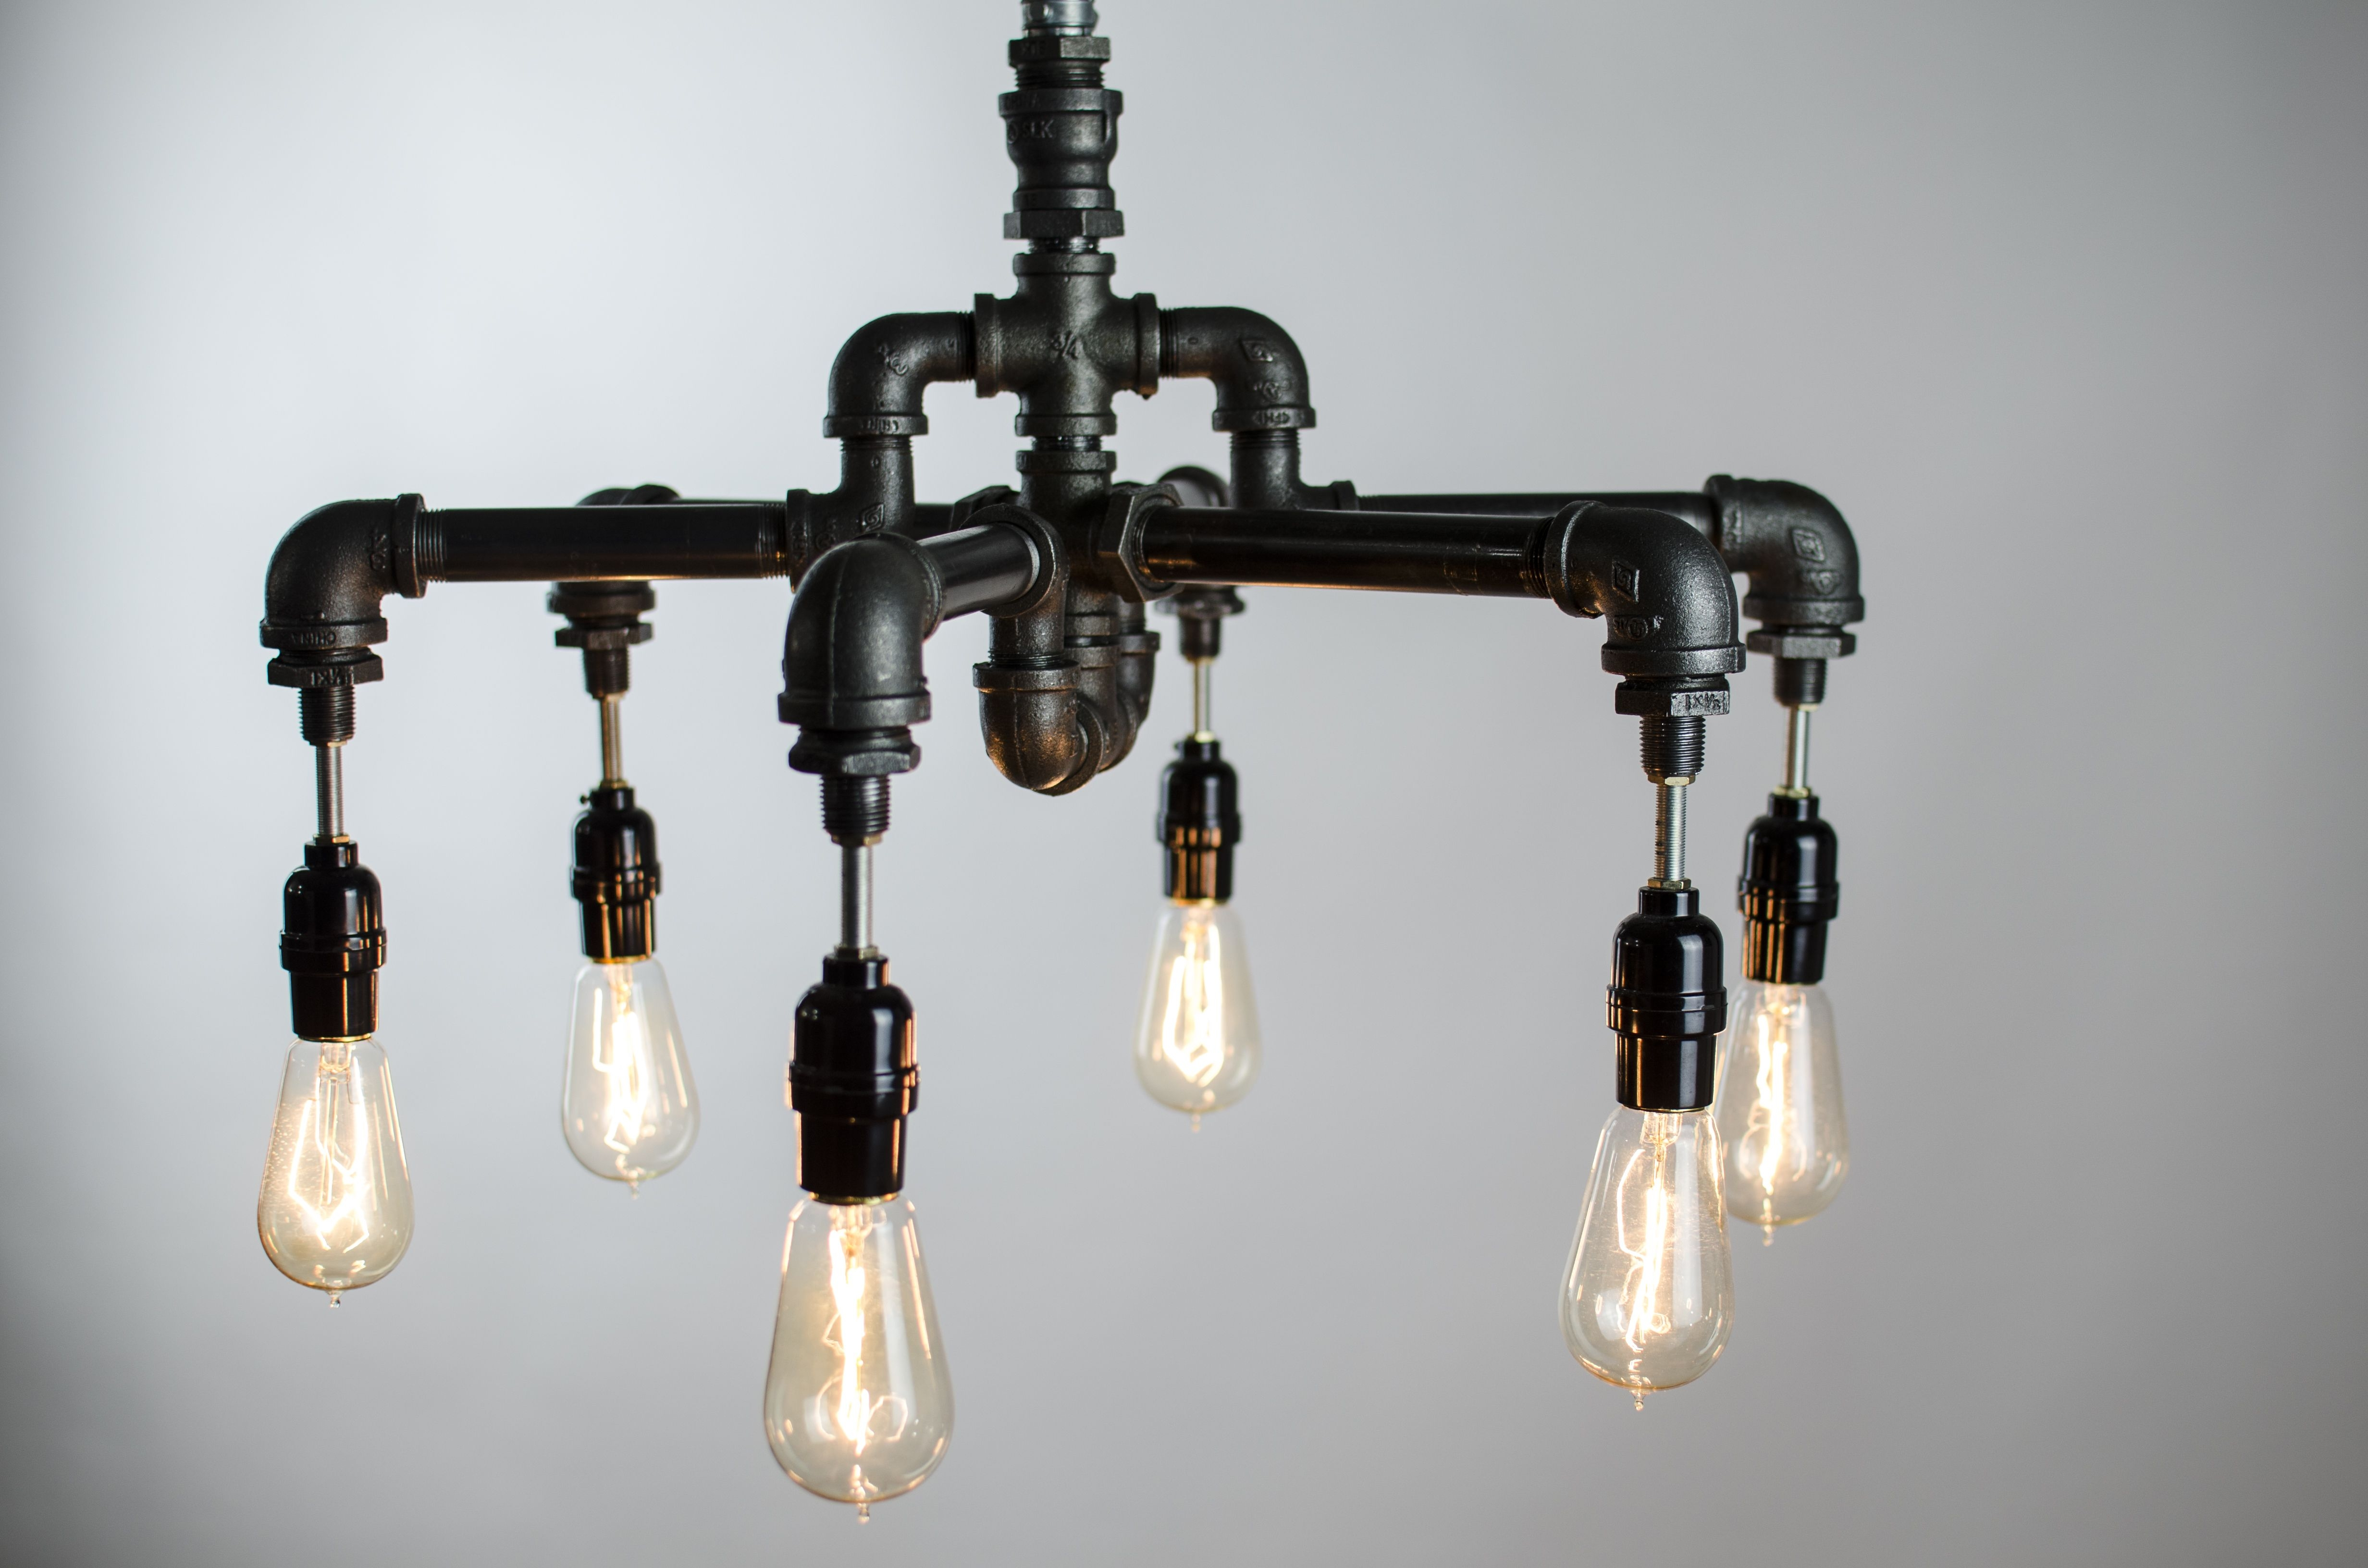 Buy A Hand Crafted 6 Edison Bulbs Industrial Lighting Chandelier Inside Light Fitting Chandeliers (Image 4 of 25)